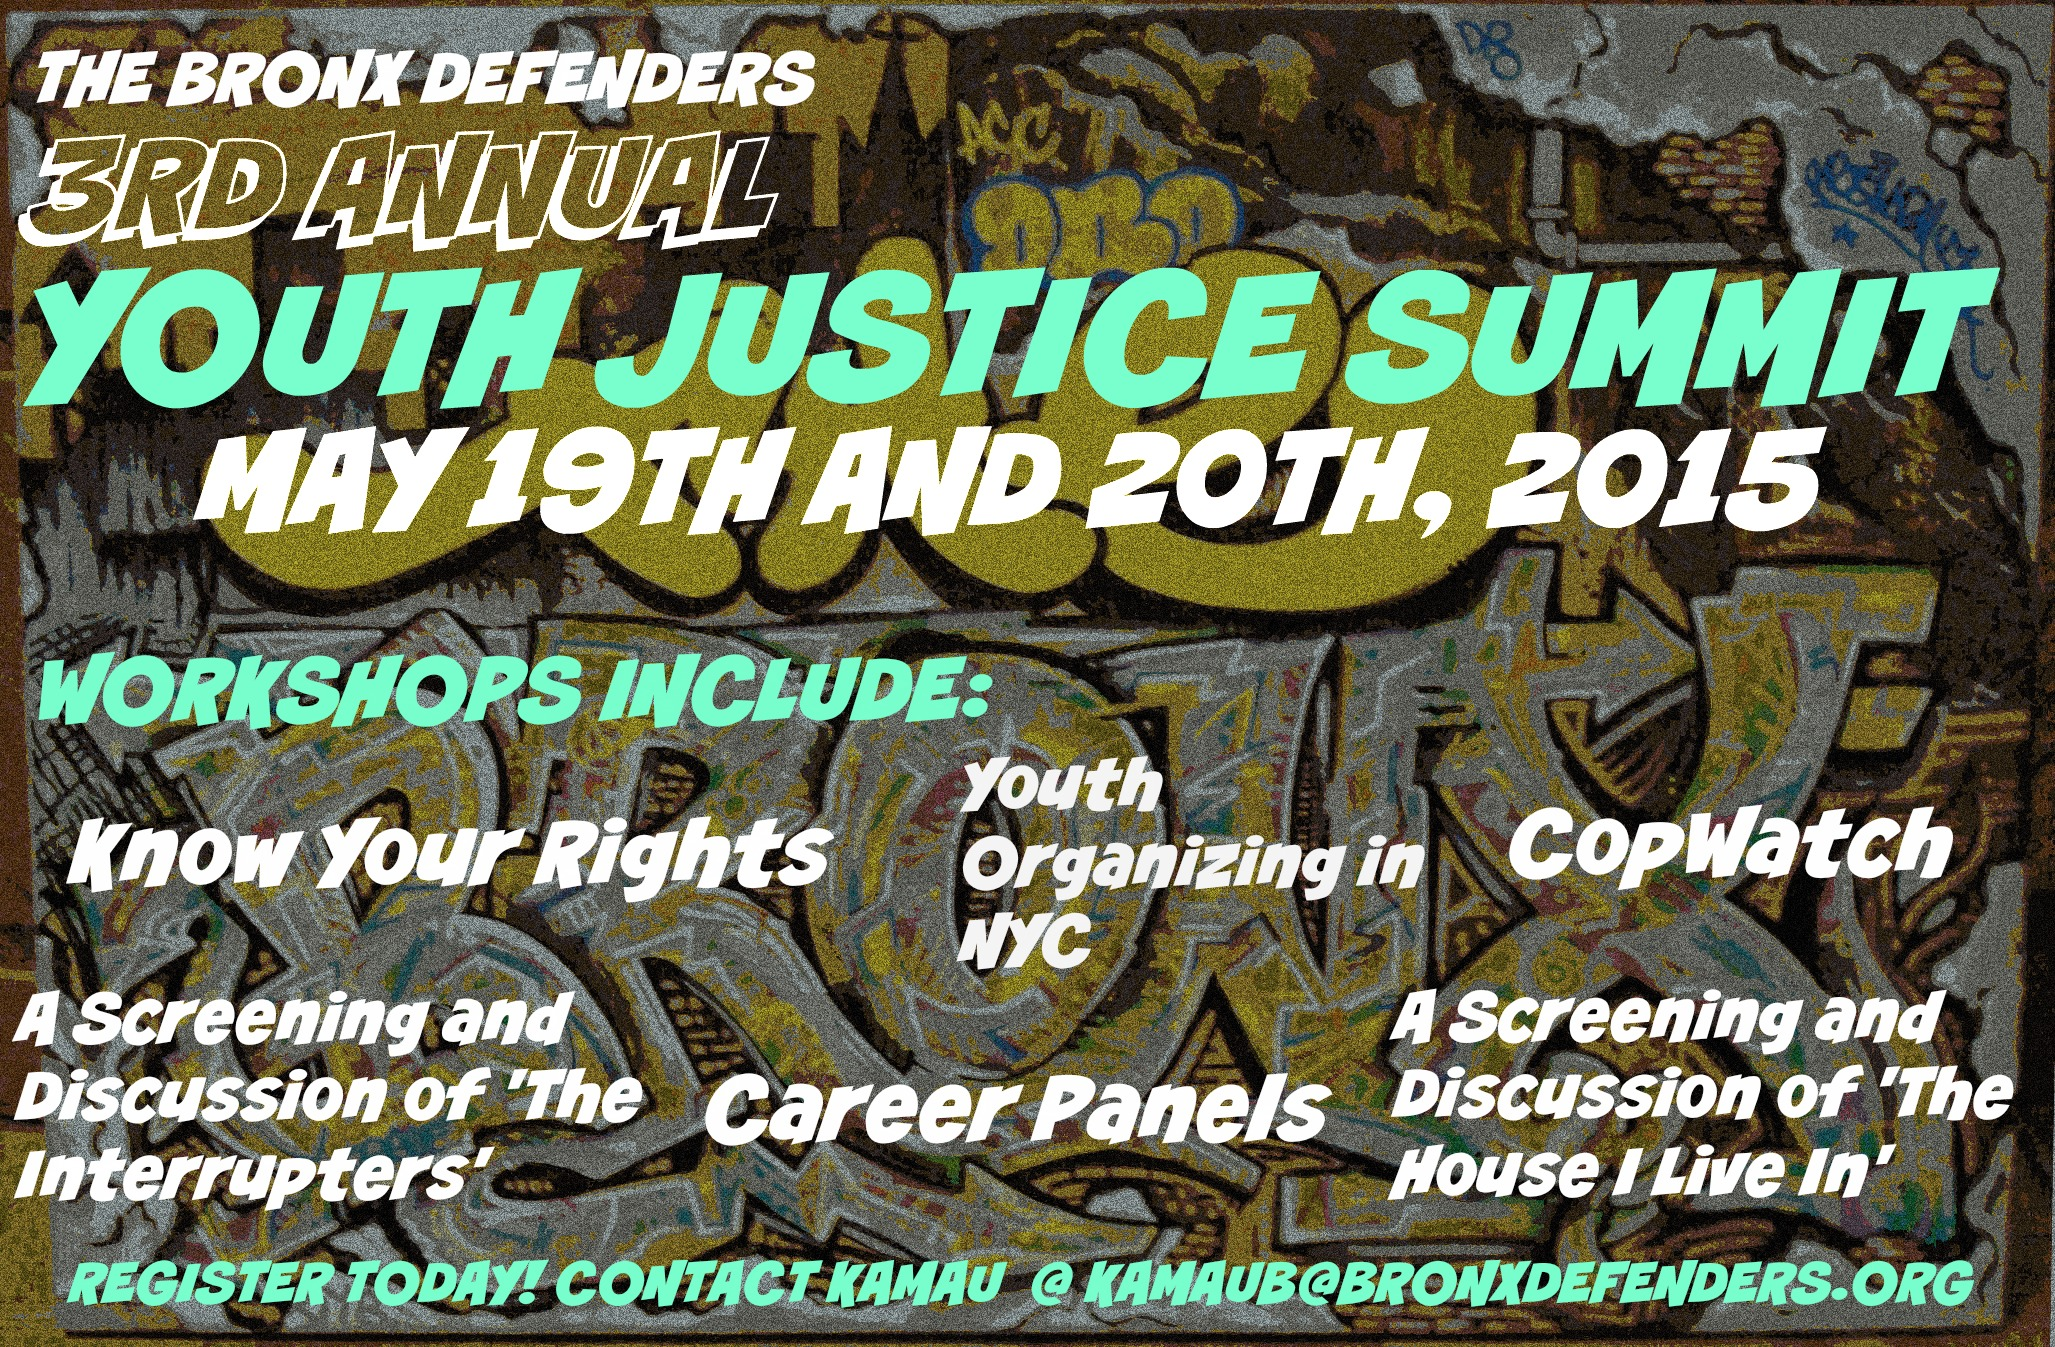 BxD's Annual Youth Justice Summit coming up on May 19 and 20